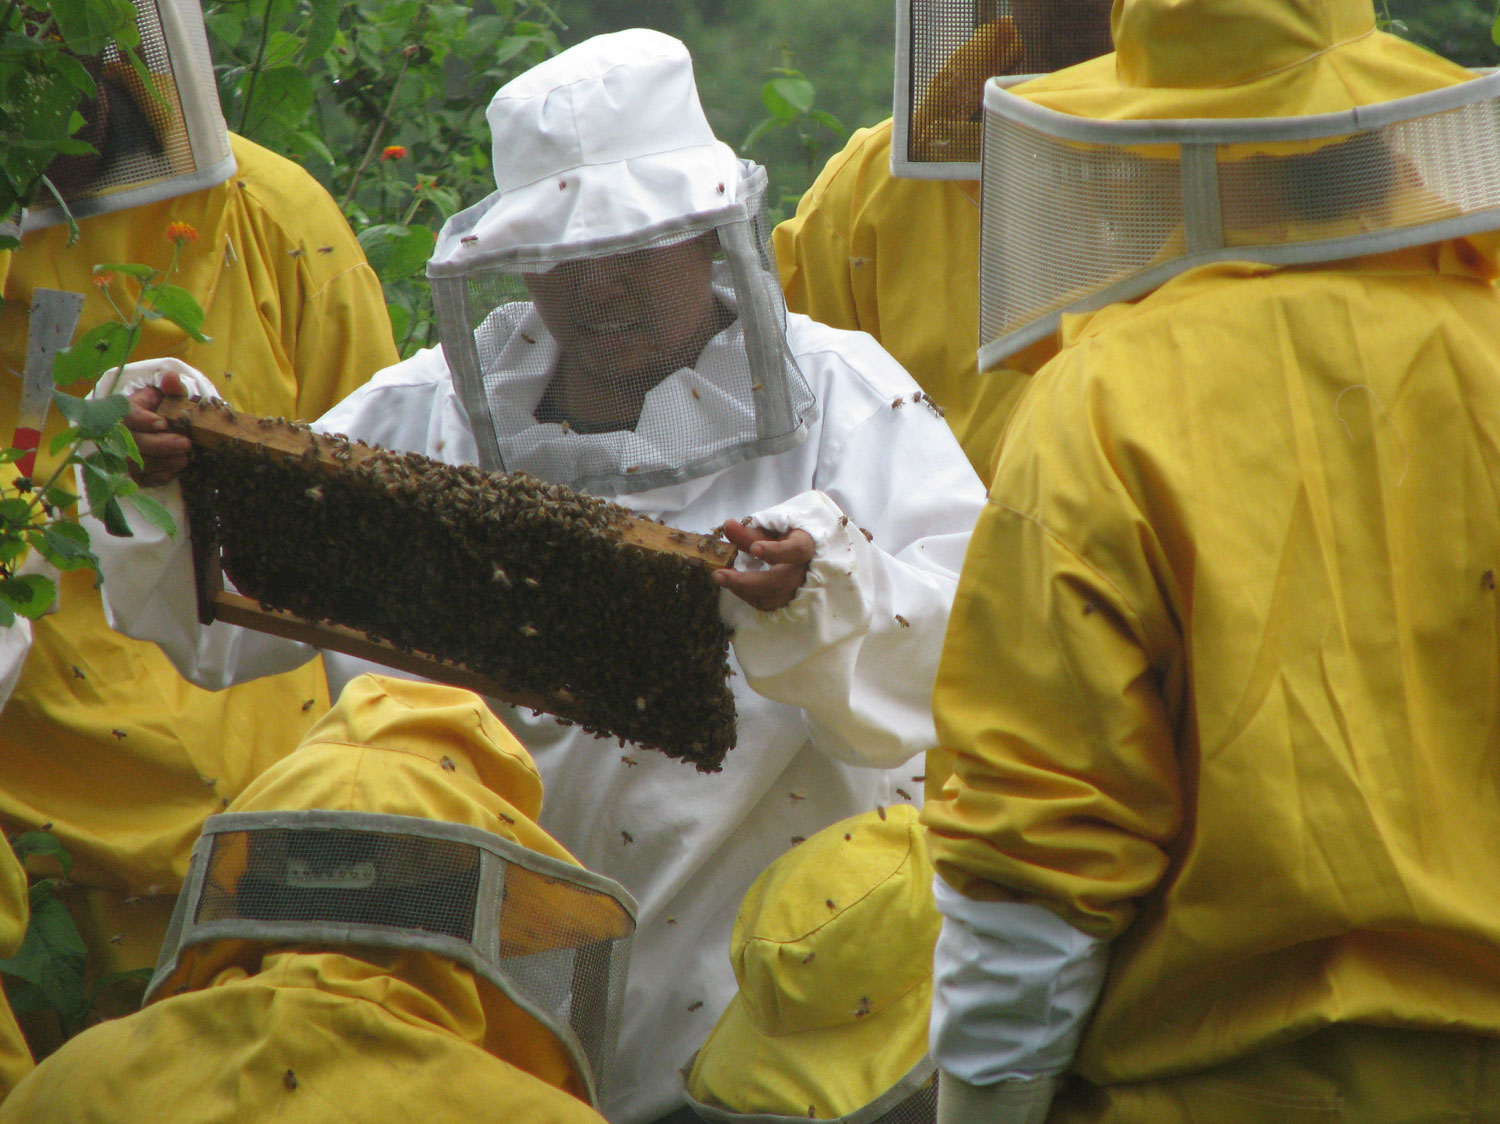 Erica is the Nuevas Esperanzas team member in charge of the beekeeping project - no gloves for her!